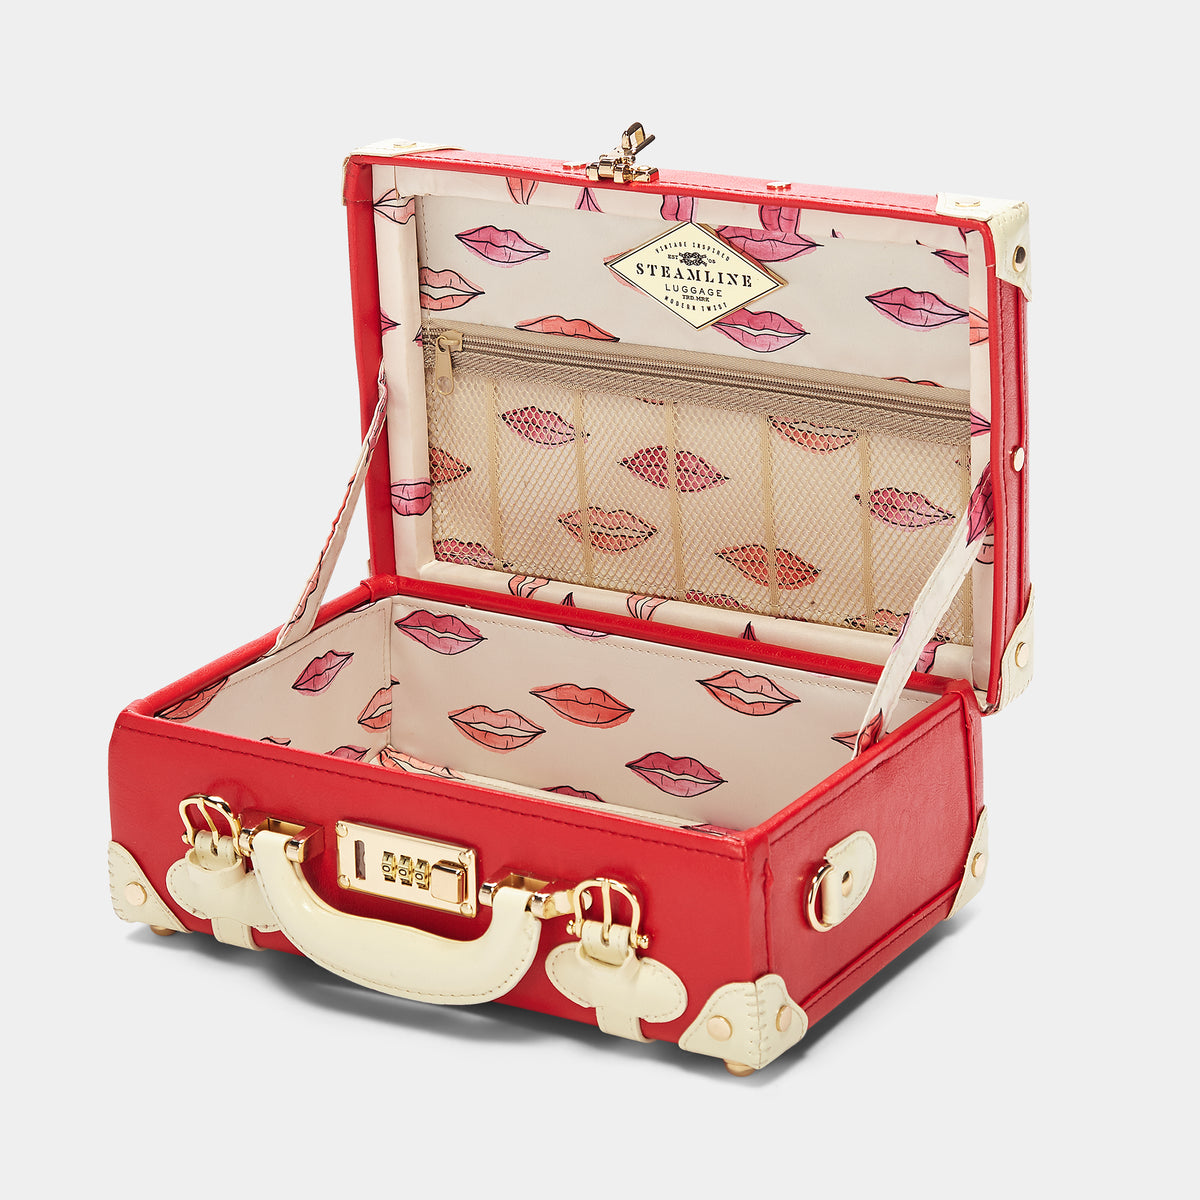 The Entrepreneur Vanity in Red Lip - Vintage-Inspired Vegan Luggage - Interior Front